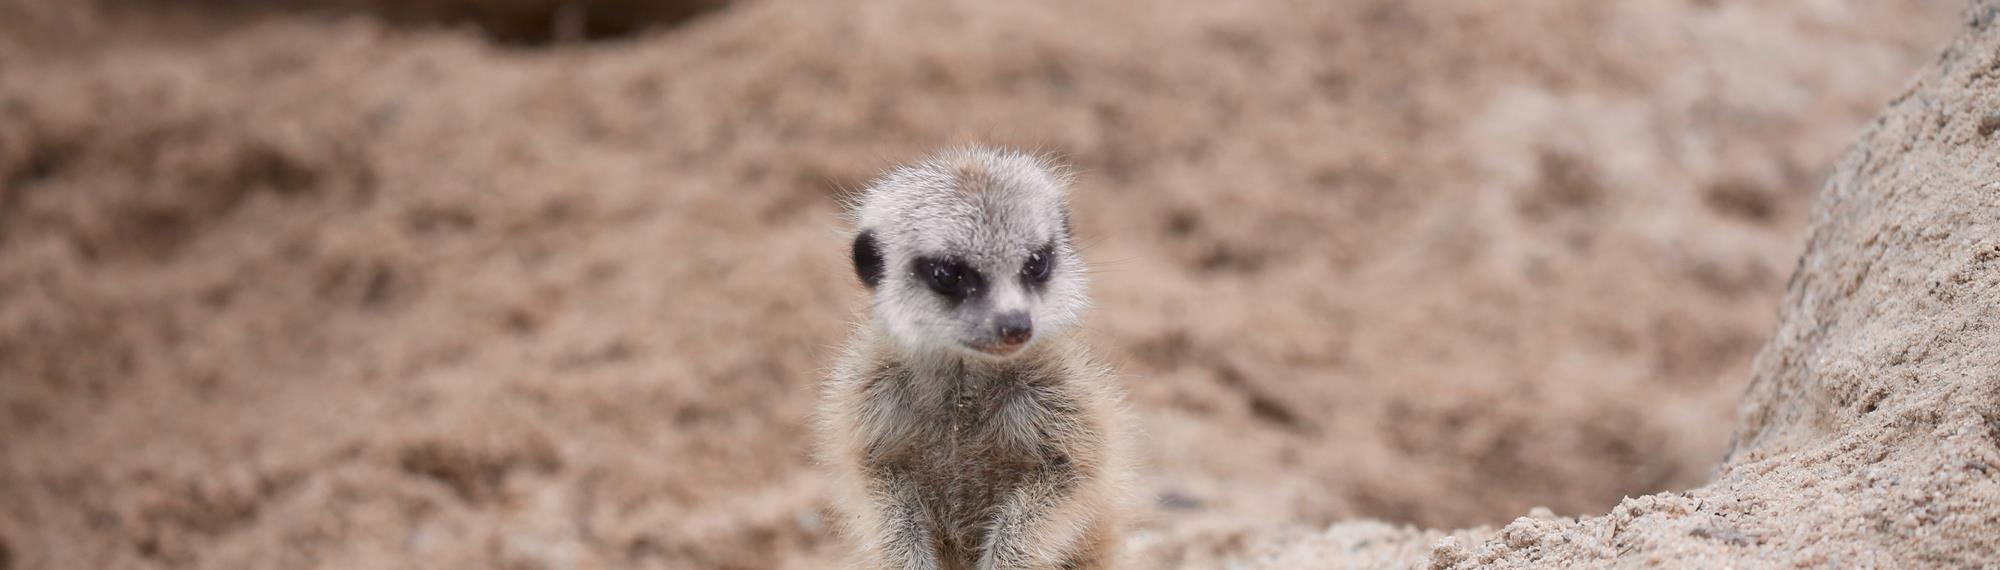 Super cute baby meerkat standing in the sand on its hind legs. Baby meerkat is light brown with black patches around eyes and ears and is looking down.